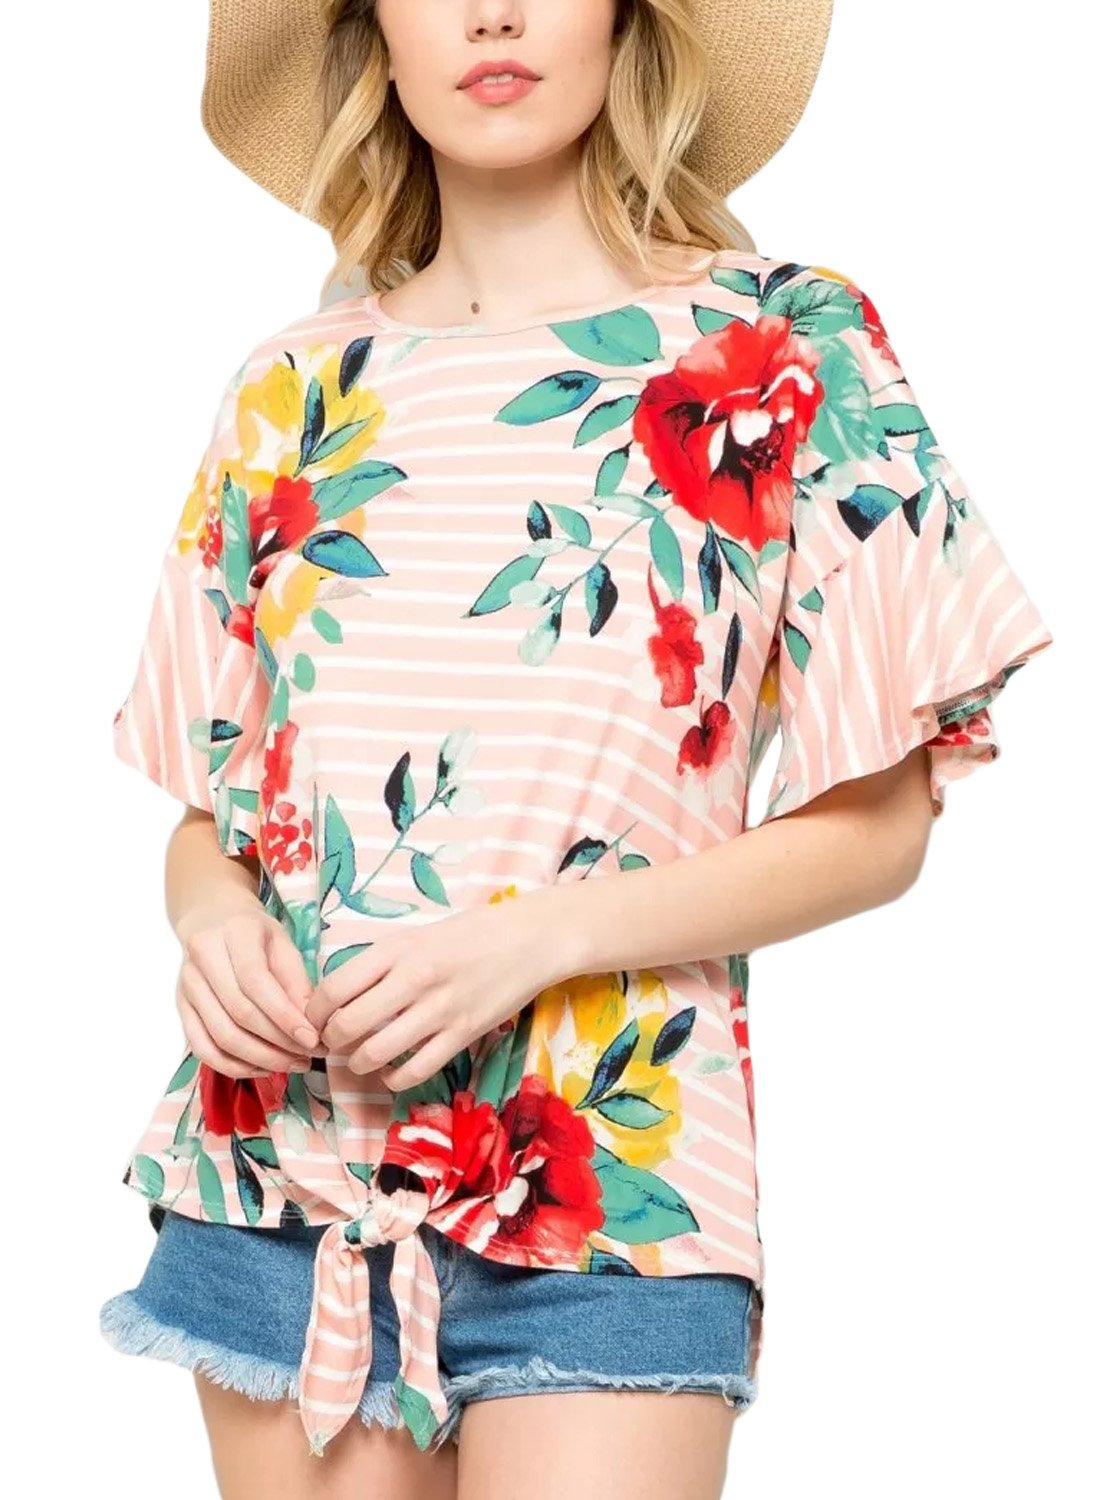 HOTAPEI Women's Floral Stripe Hawaiian Bow Short Sleeve Tunic Tops T-Shirt Summer Casual Blouses for Women Large